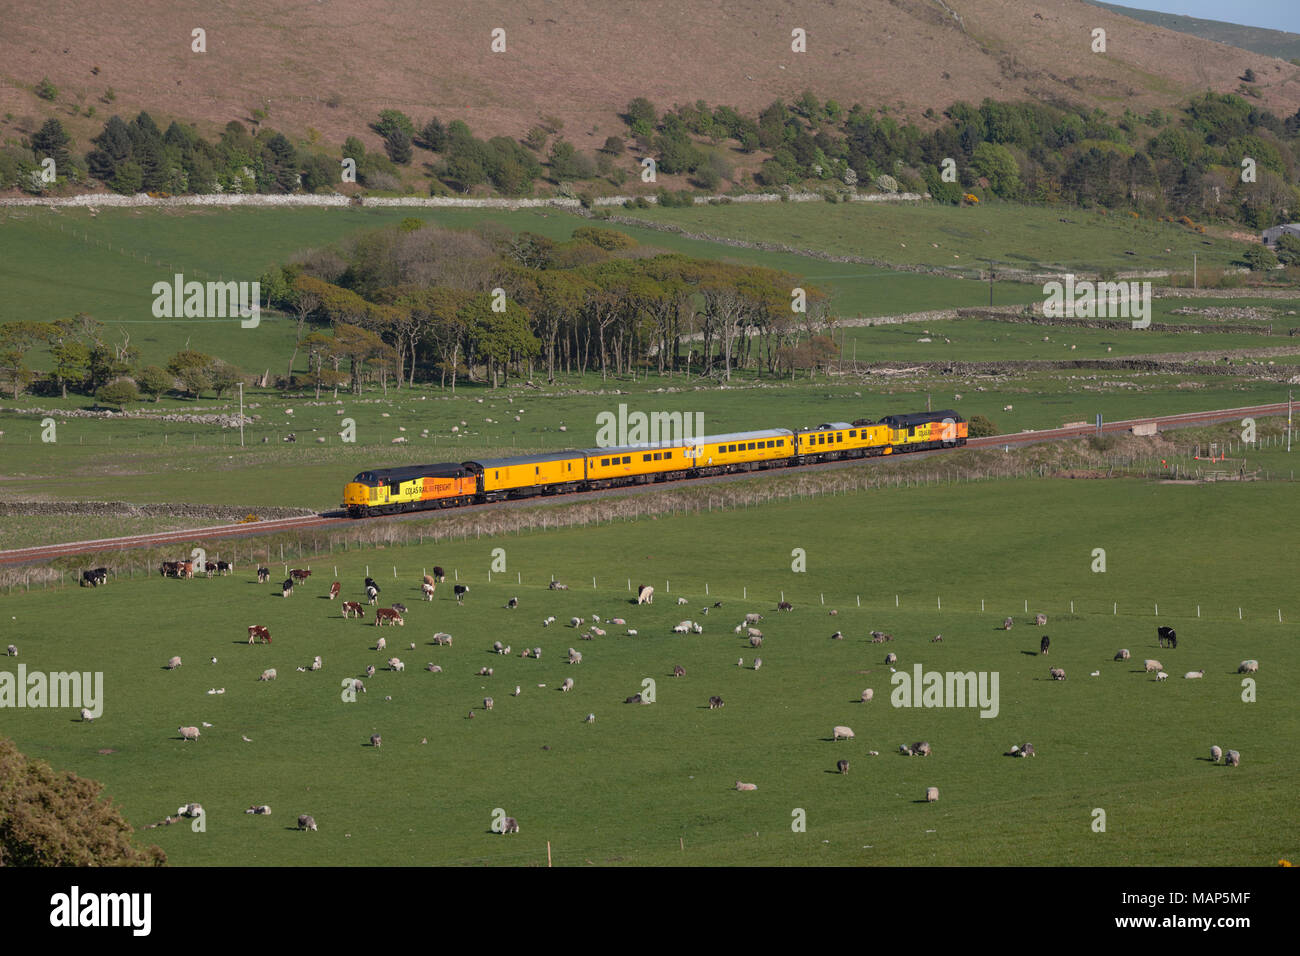 2 Colas Railfreight class 37 locomotives on the Cumbrian Coast railway line near Silecroft with a Network rail infrastructure monitoring test train Stock Photo